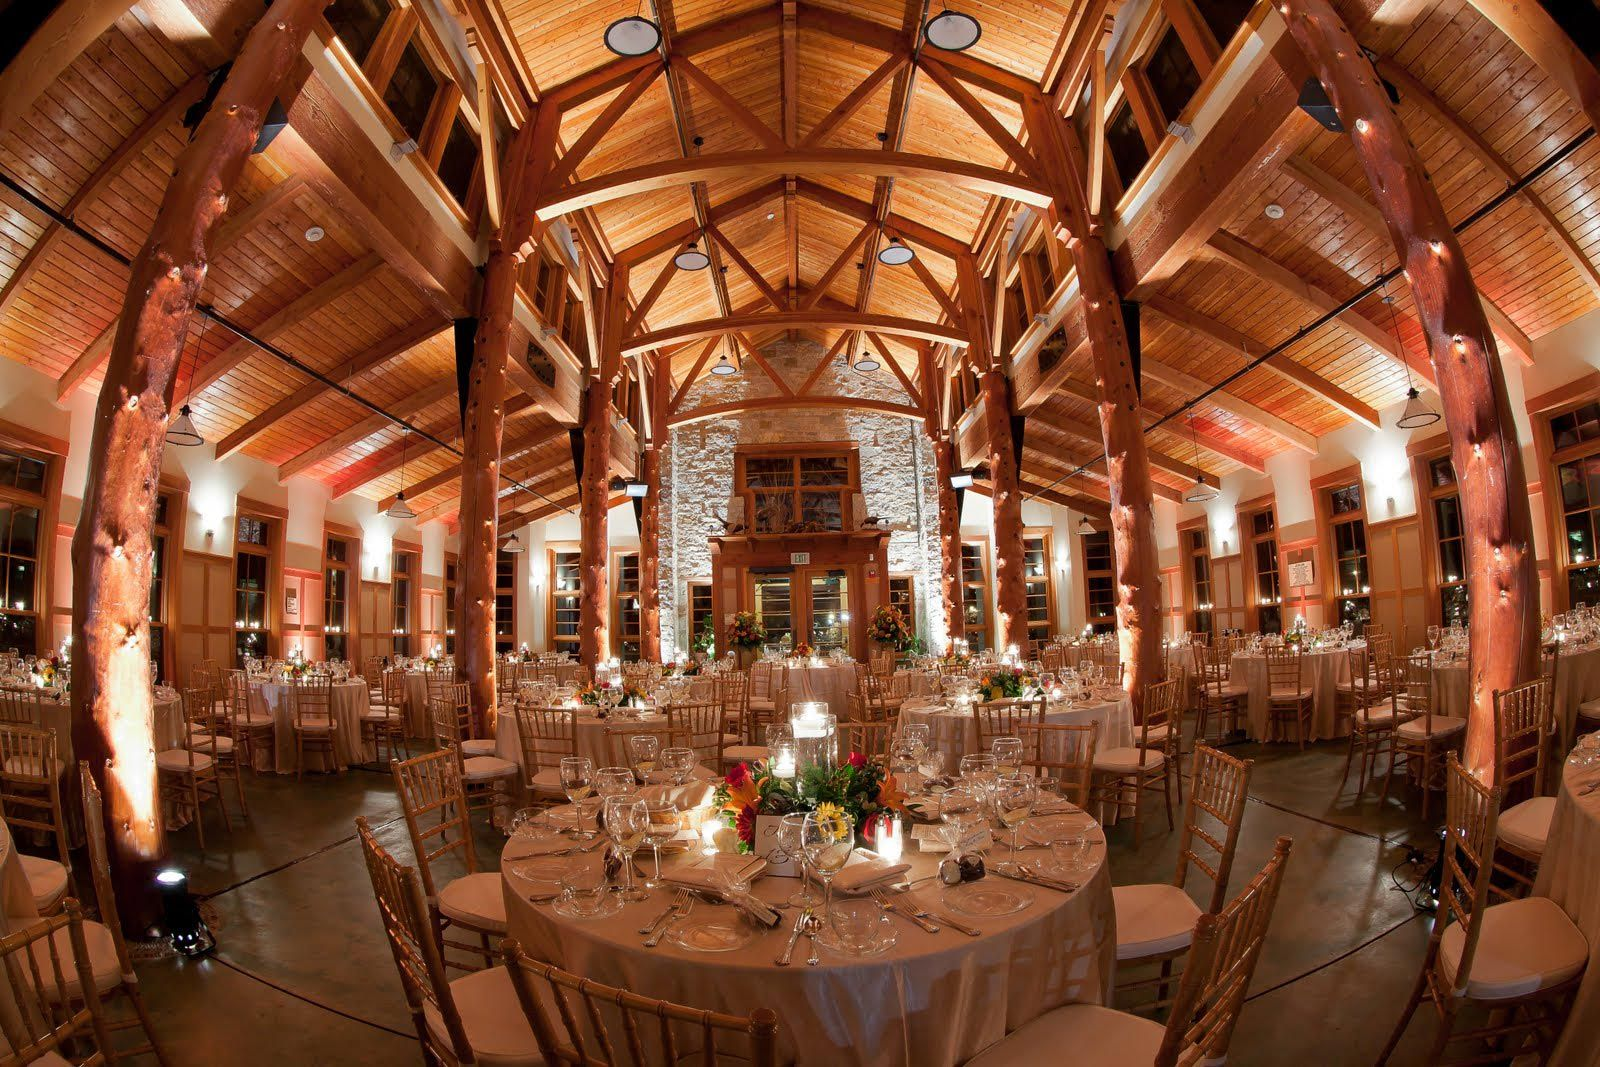 Wooded Wisconsin Wedding Great Hall Is Reminiscent Of A North Woods Lodge With Soaring Two